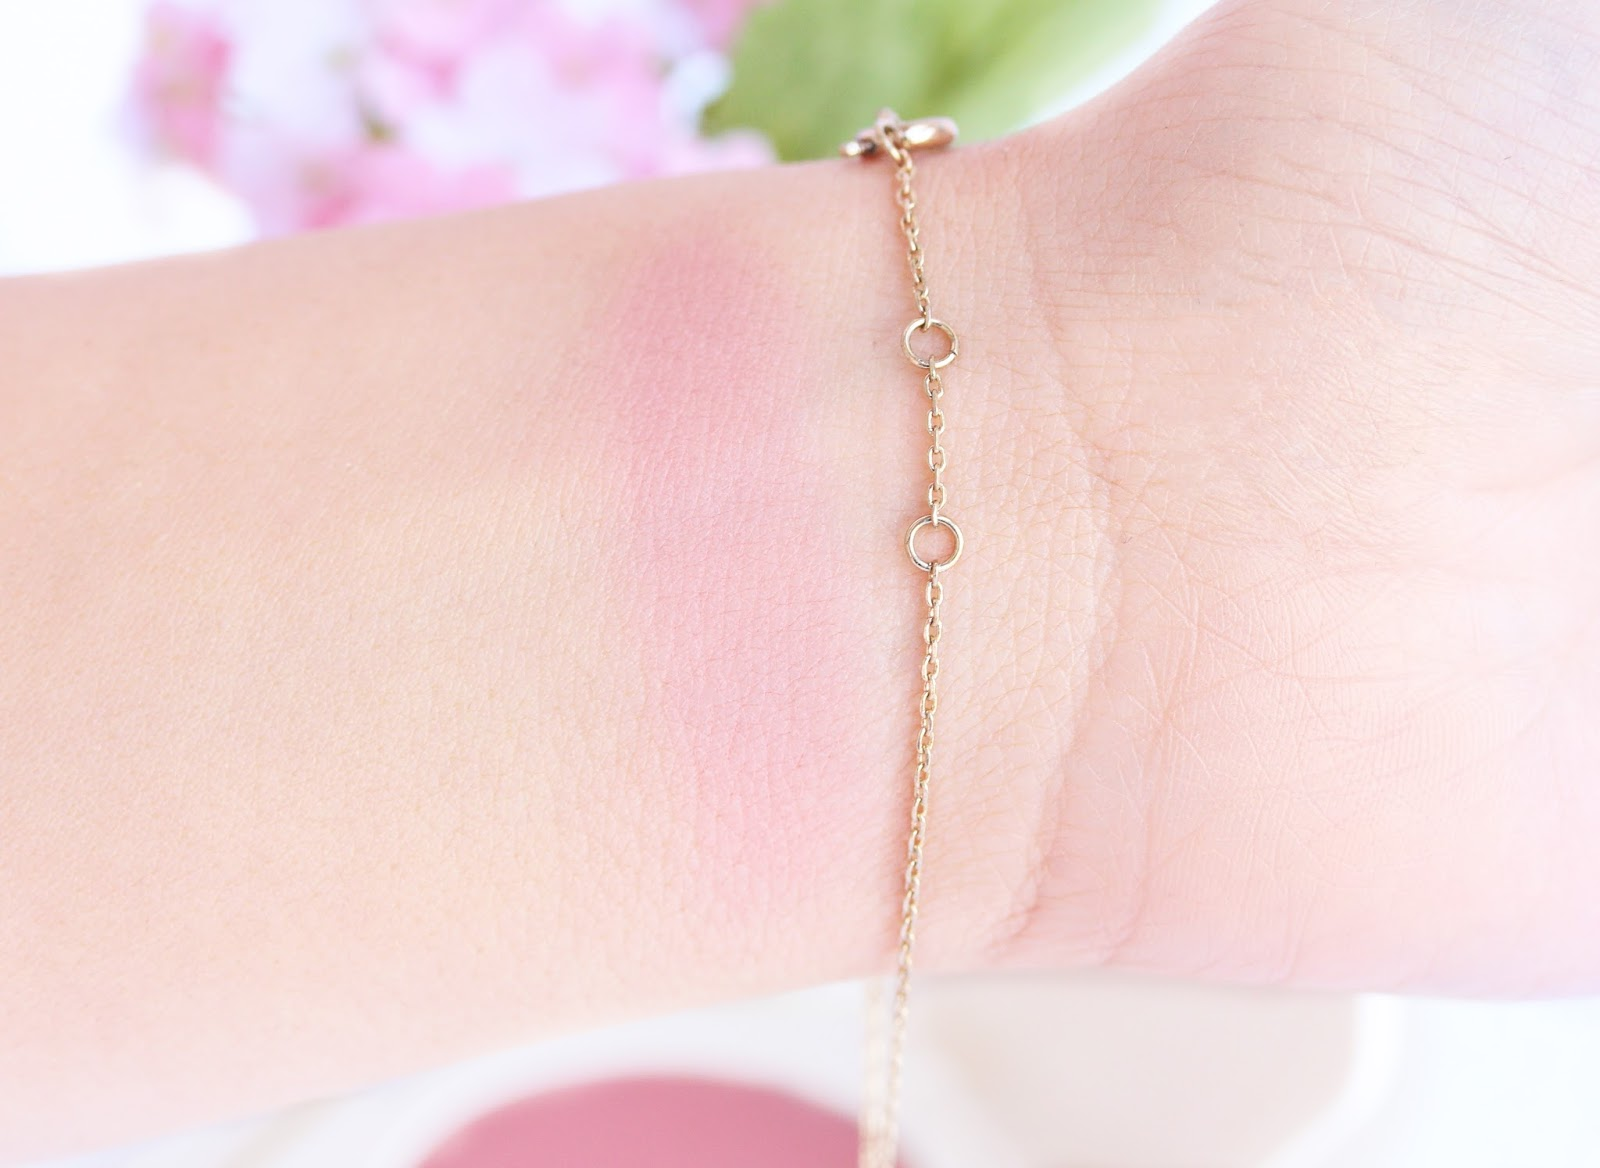 H&M Pure Velvet Cream Blush in Dusty Rose Swatches